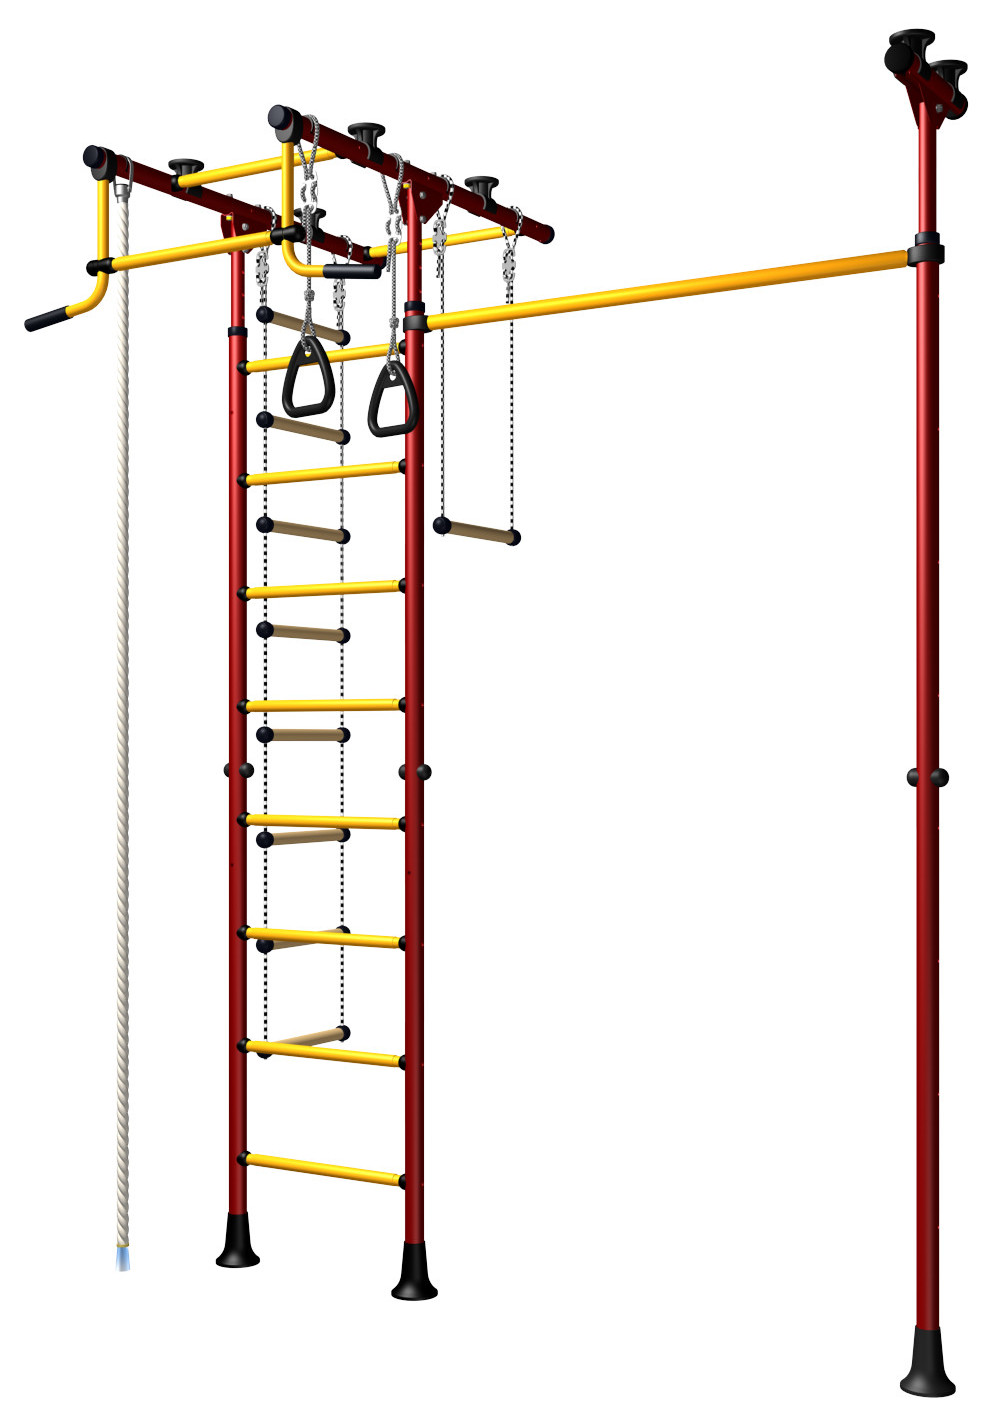 Indoor Sport Gym for Kids, model Comet-3.06 - metal rungs covered with plastic with massage bumps - Additional Pull Up Bar